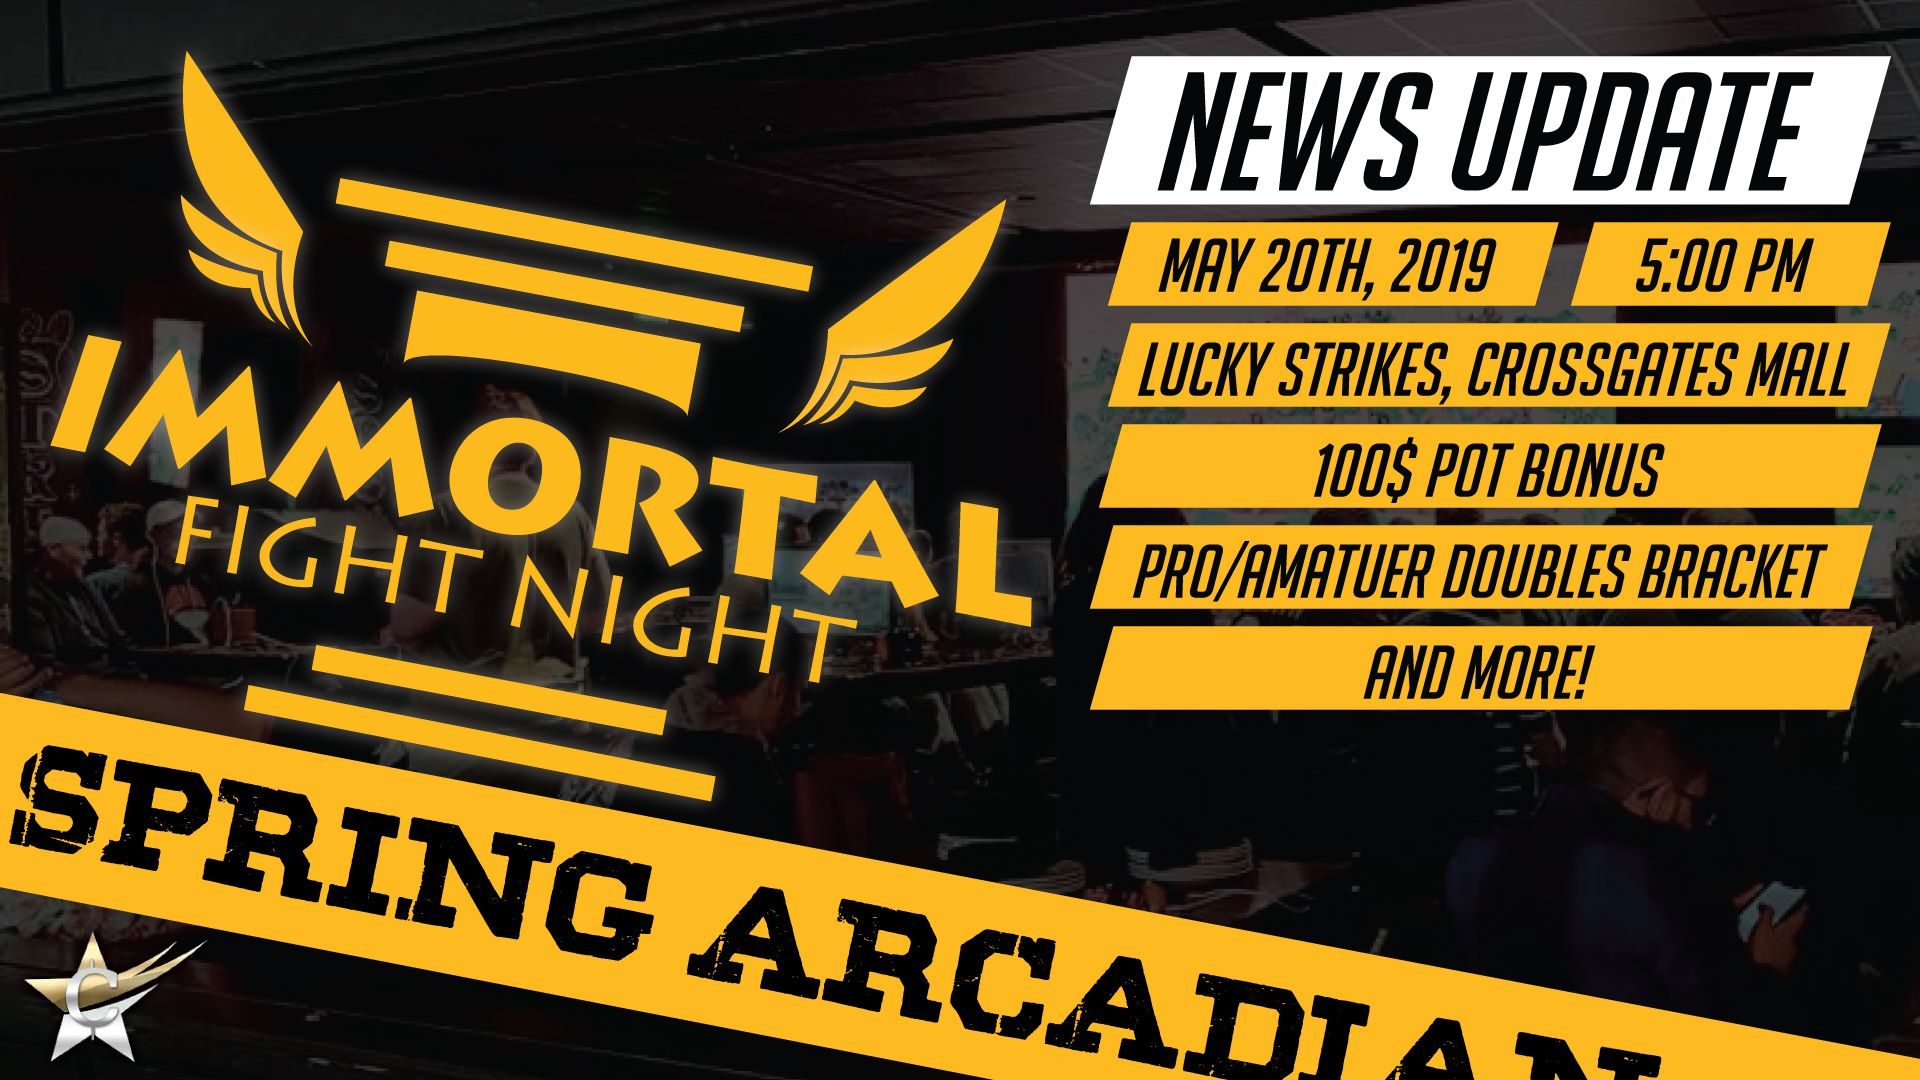 Claim to Fame Entertainment - Immortal Fight Night Spring Arcadian